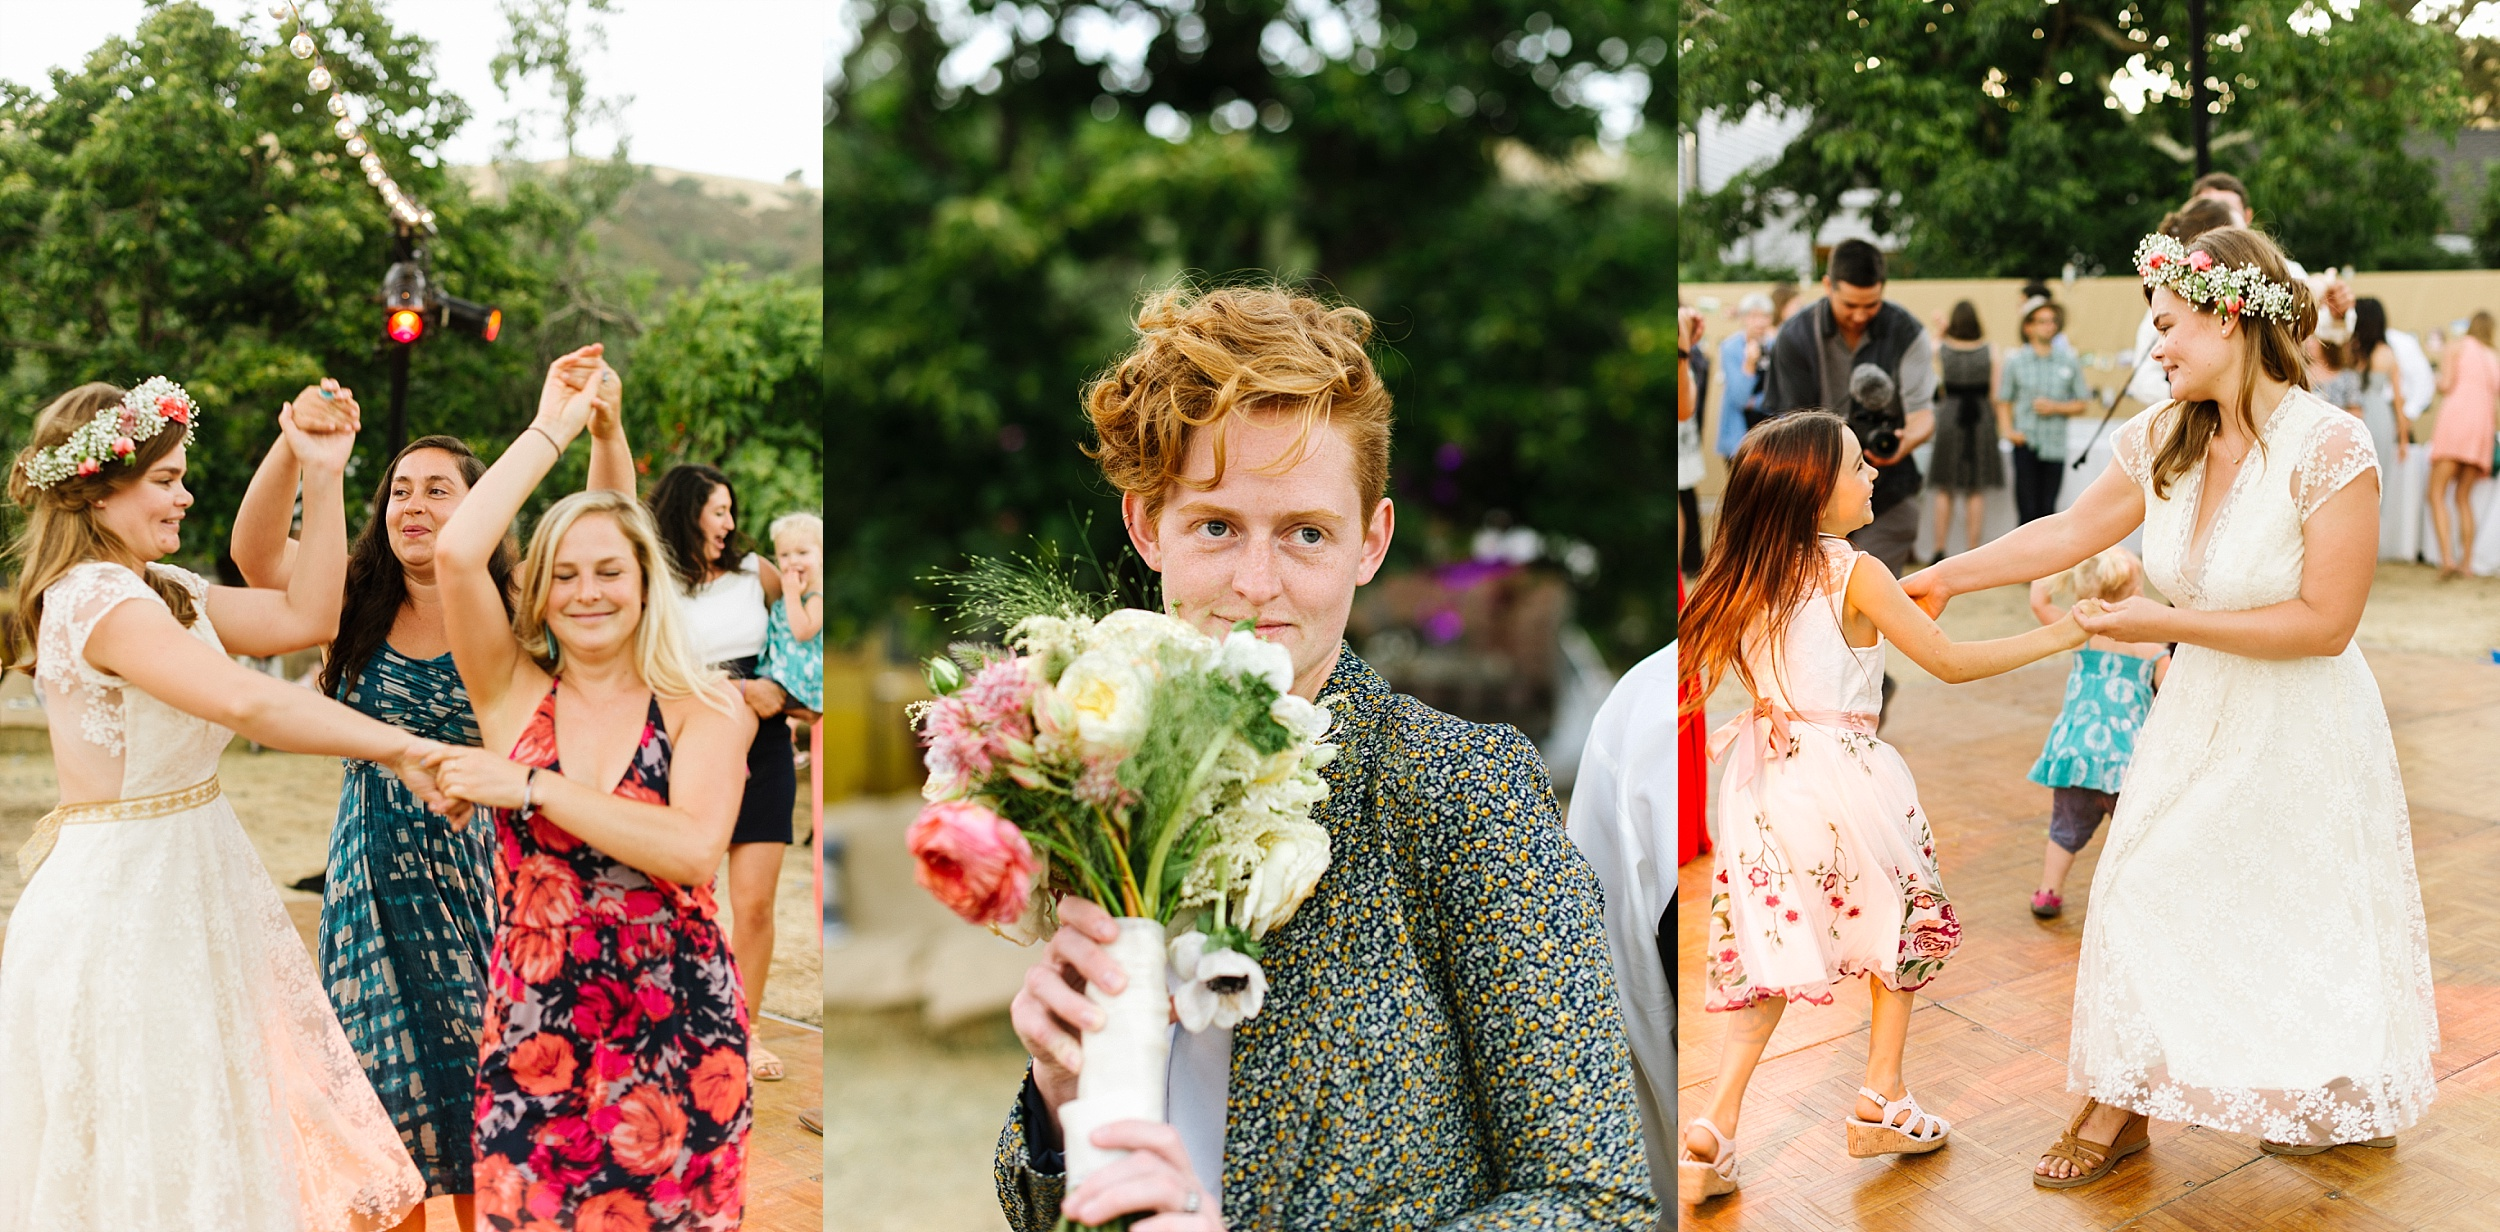 fairfax_ranch_wedding_chelsea_dier_photography_0050.jpg